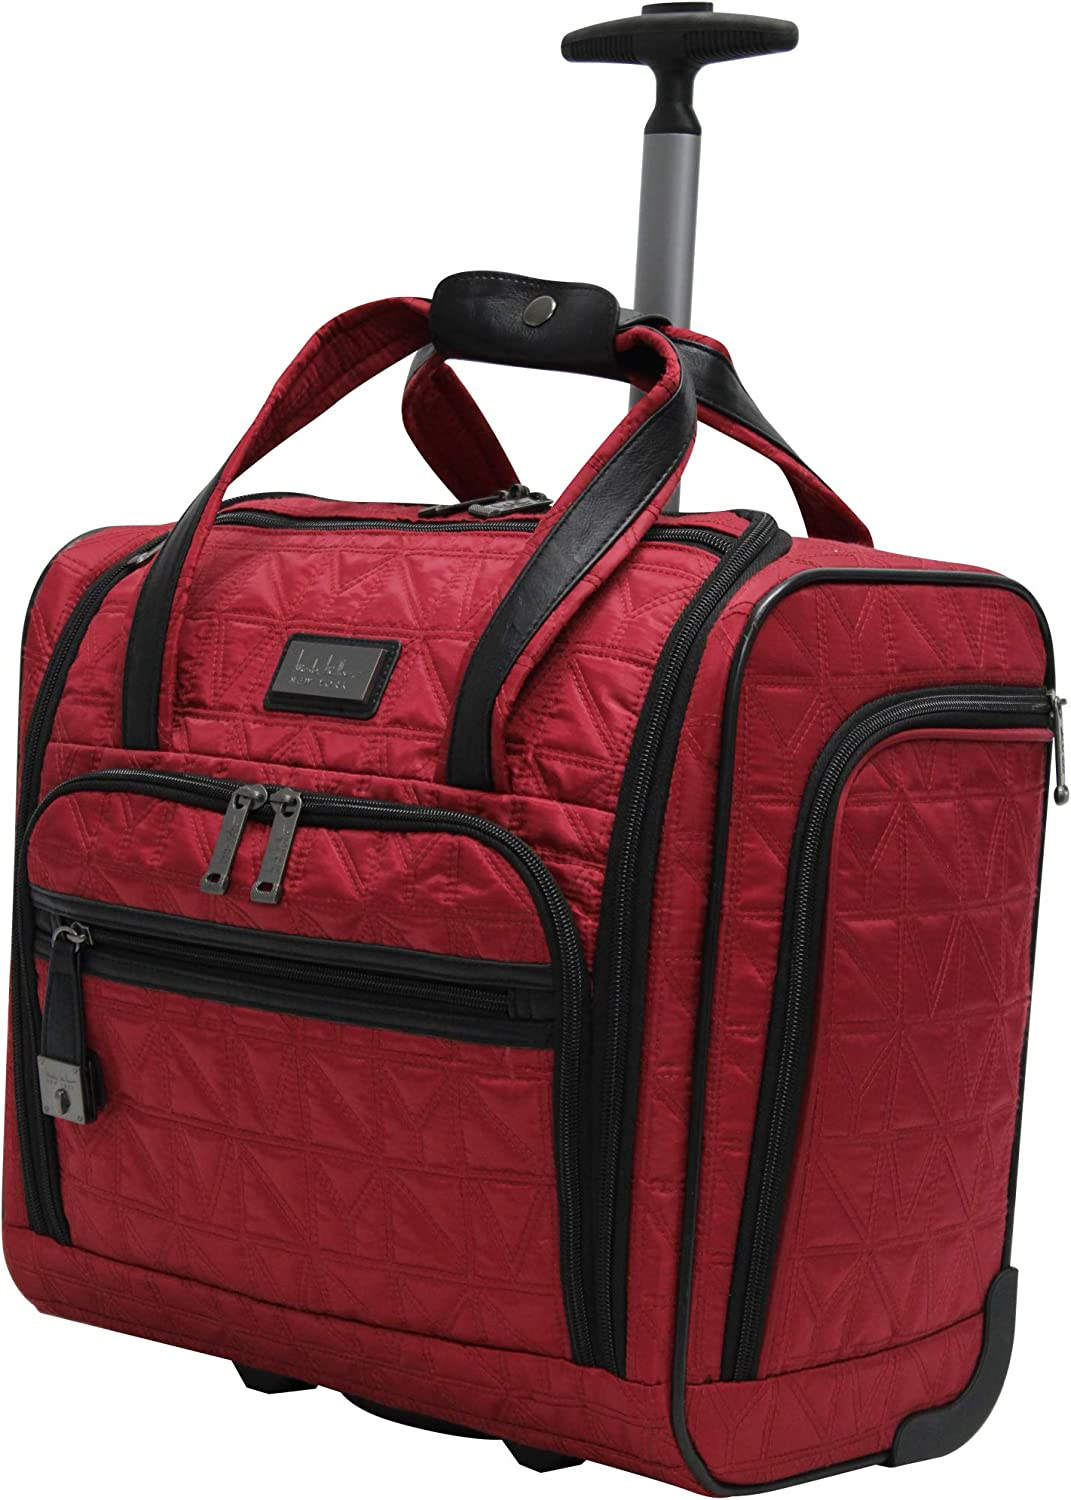 Briefcase for Women Small Lightweight 15 Inch Under Seat Bag Carry On Suitcase with 2- Rolling Spinner Wheels Nicole Miller Underseat Luggage Collection